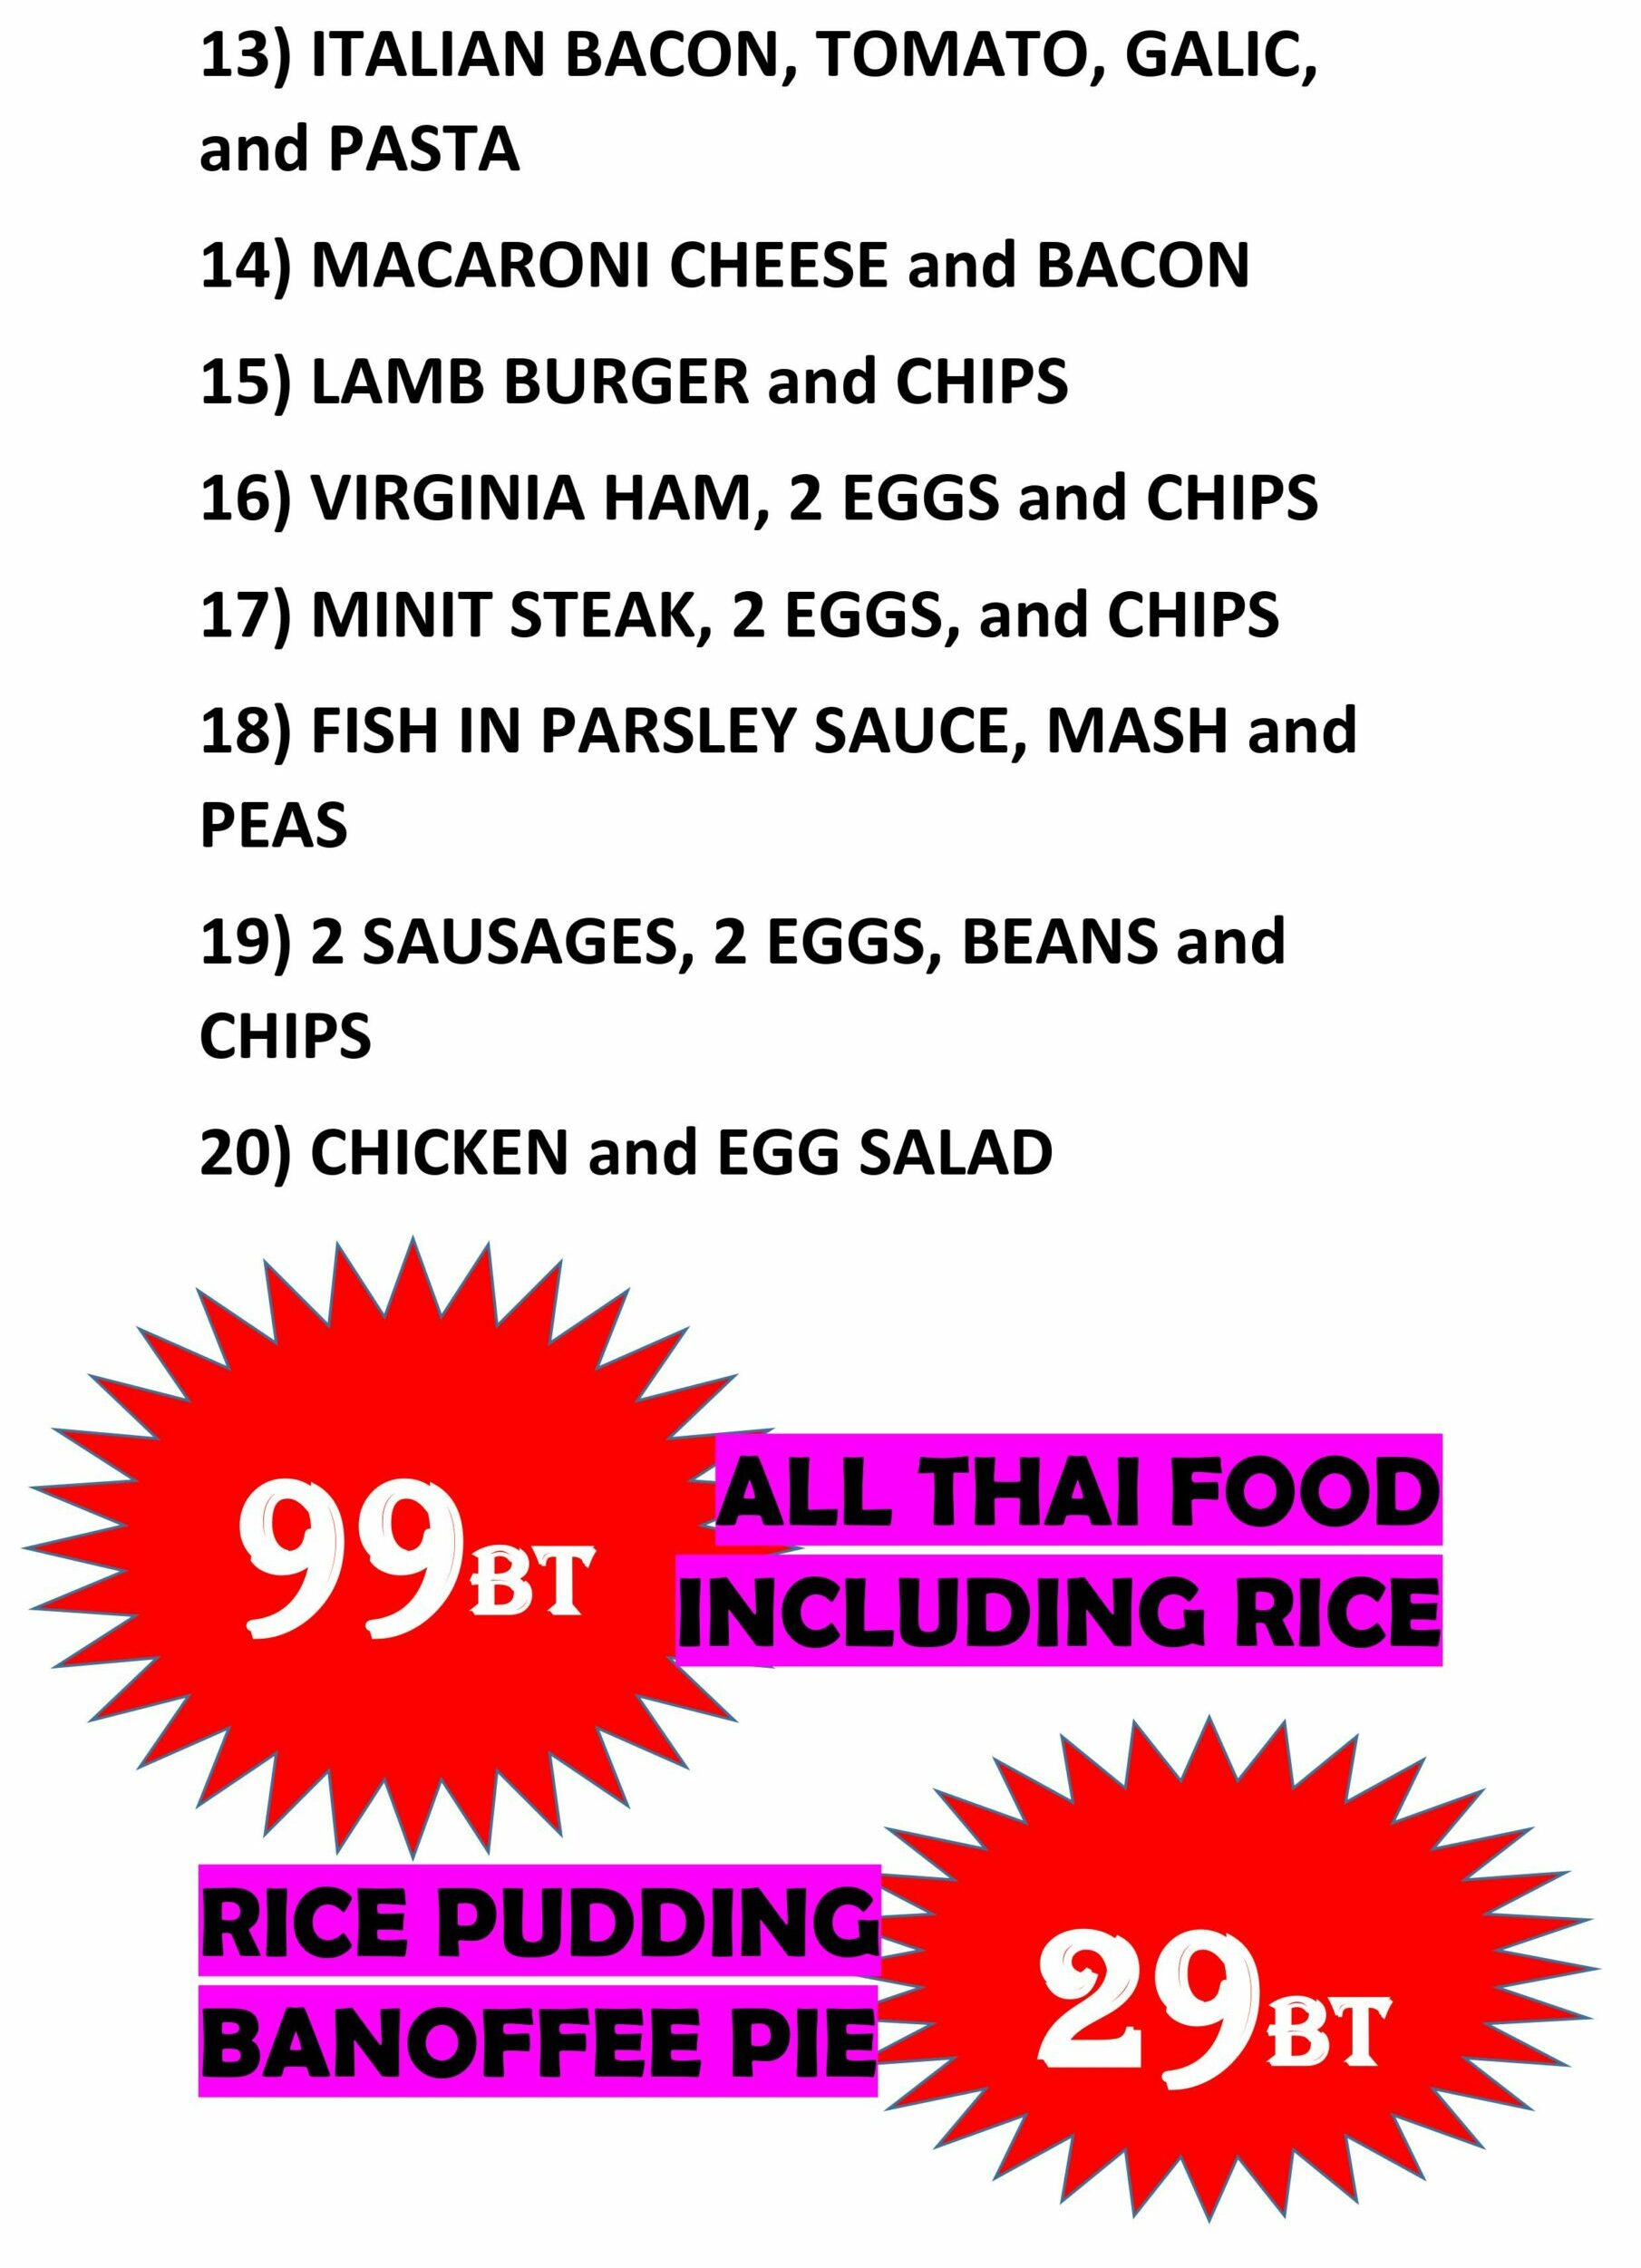 The best value meals in Pattaya are at the Hungry Hippo, Soi Buakhao.